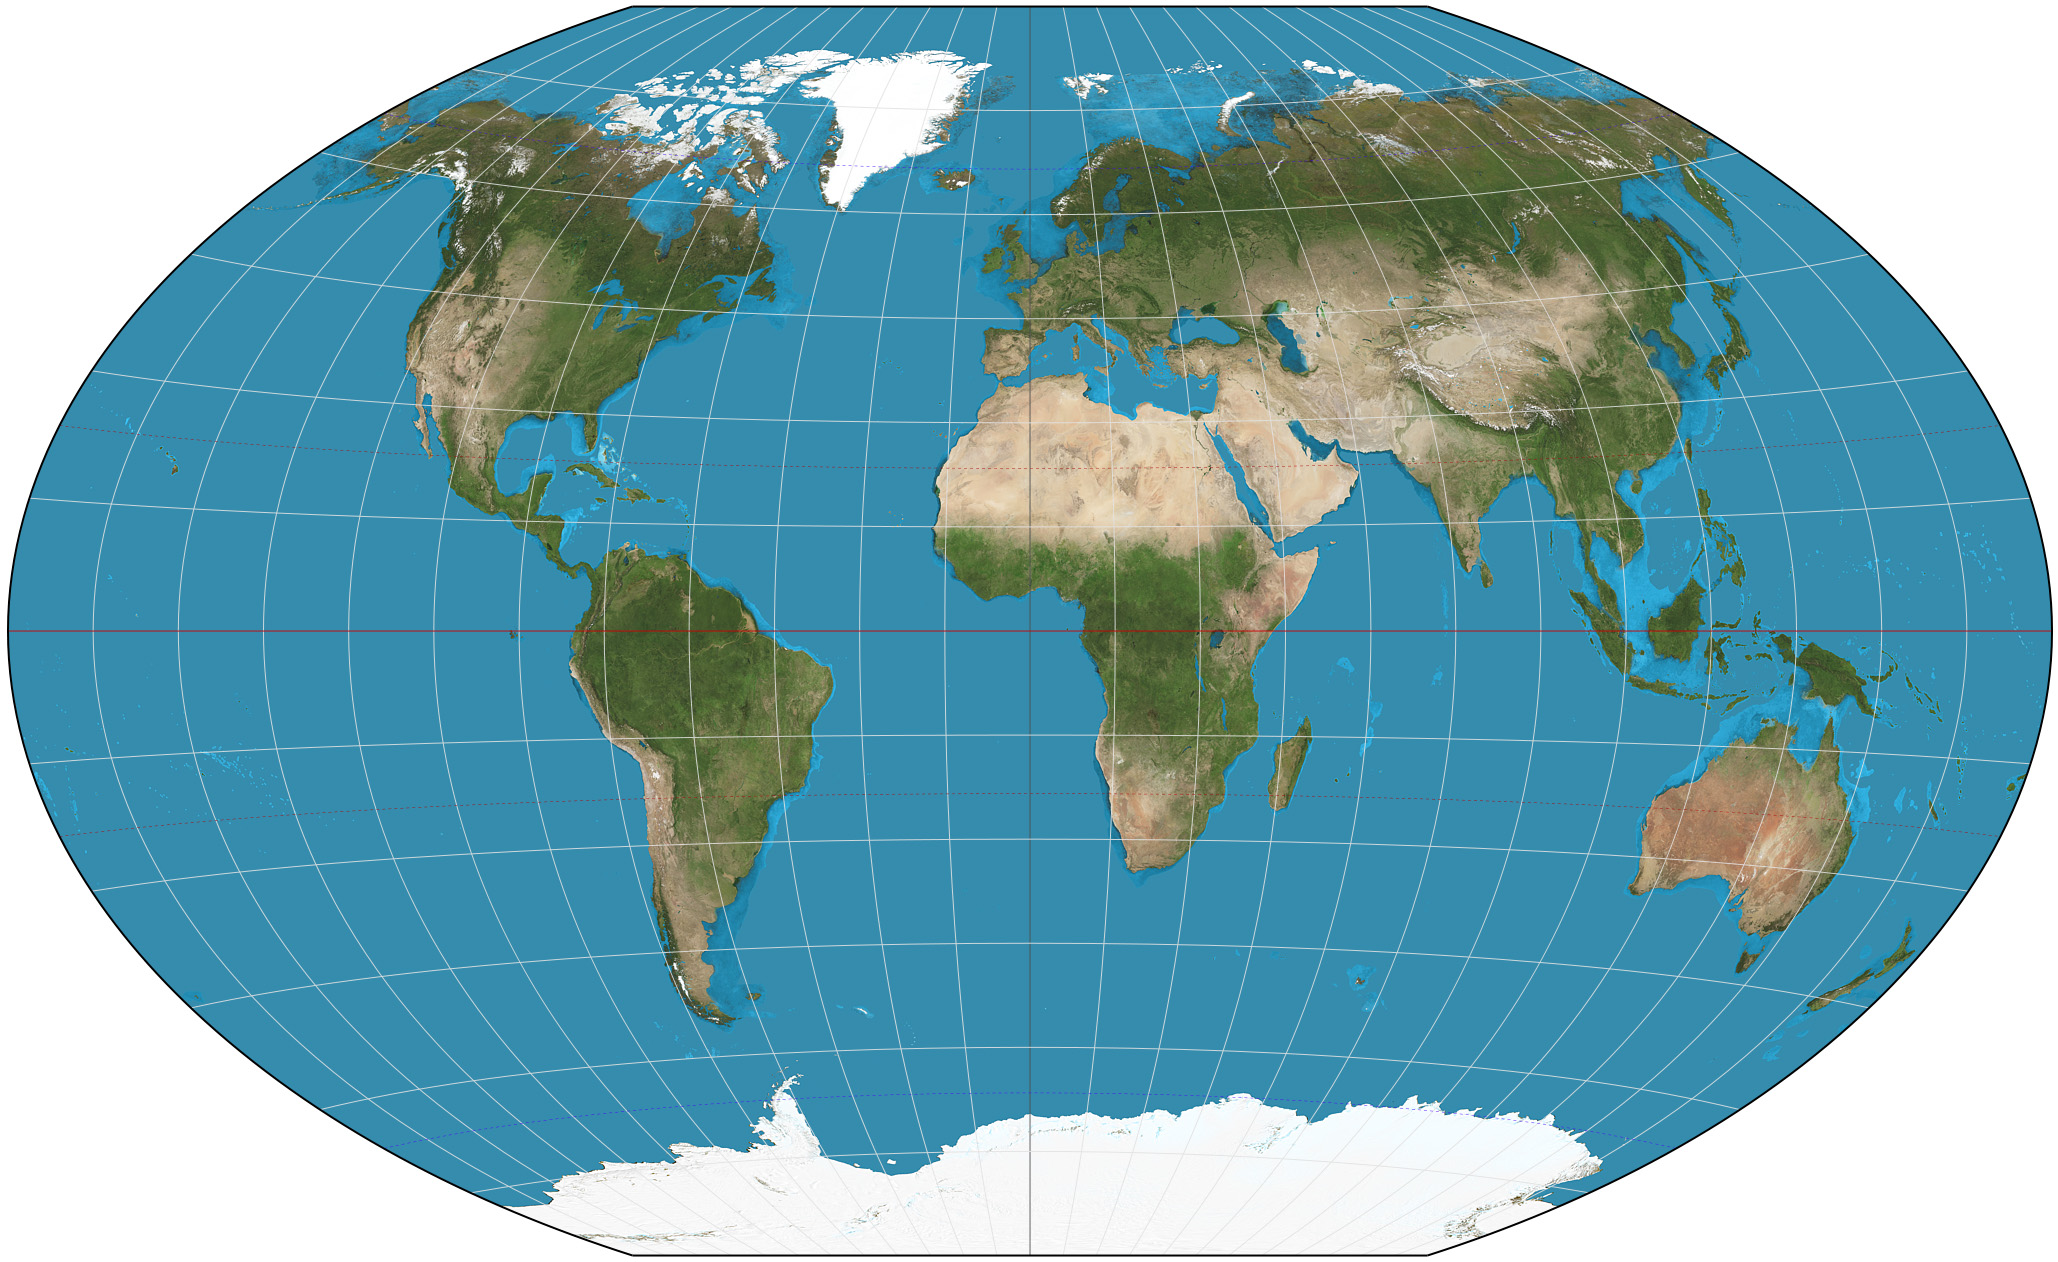 World map - Wikipedia on satellite imagery, global map, grid reference, geographic feature, geographic coordinate system, geographic information system, history of cartography, early world maps, map projection, cartography of the united states,